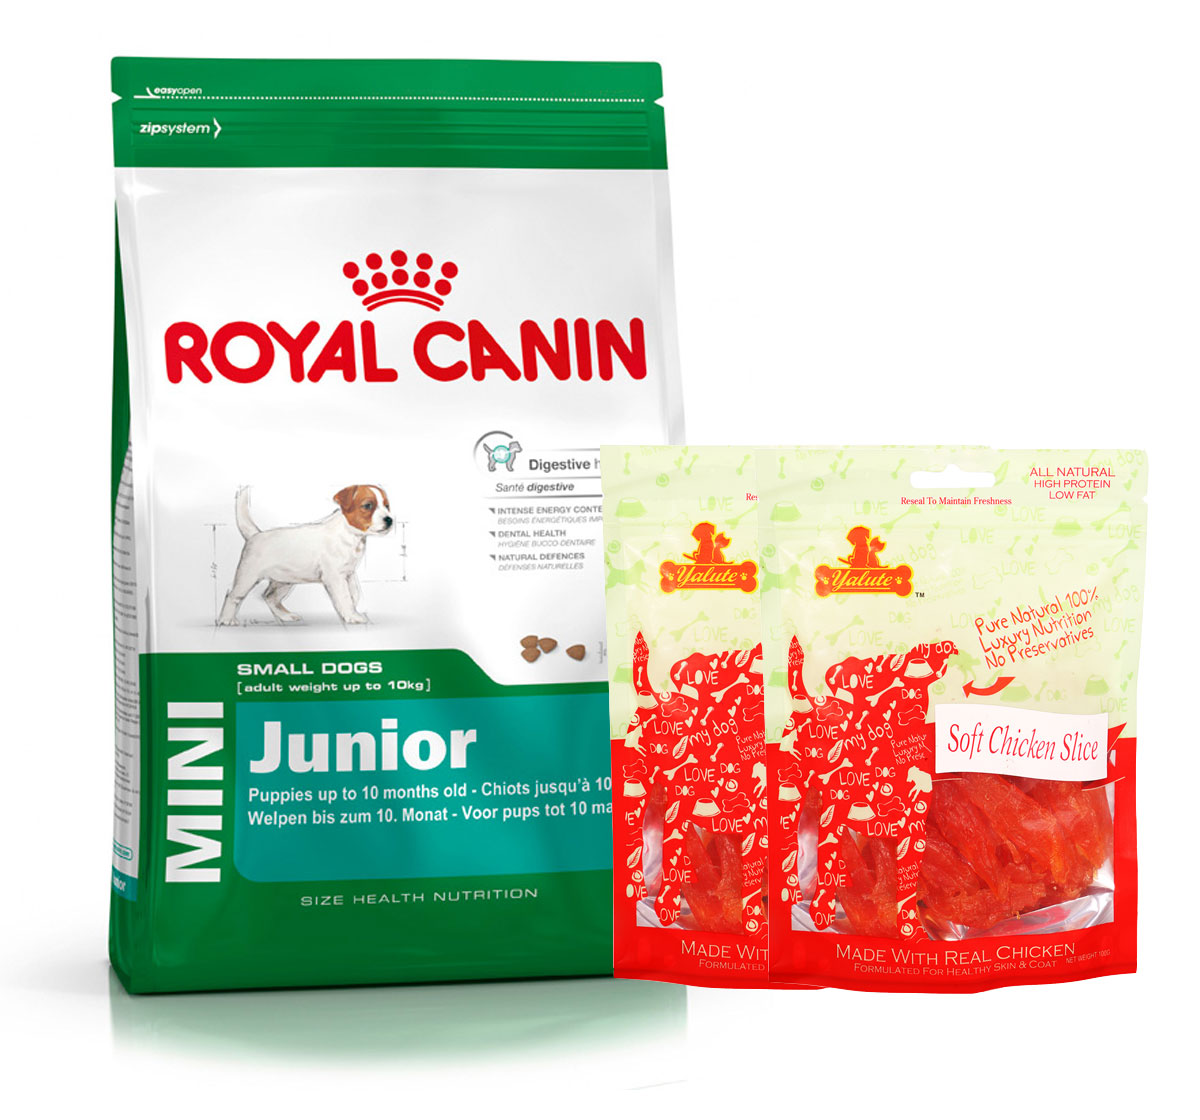 Royal Canin Mini Junior - 4 Kg  With Chicken Slices